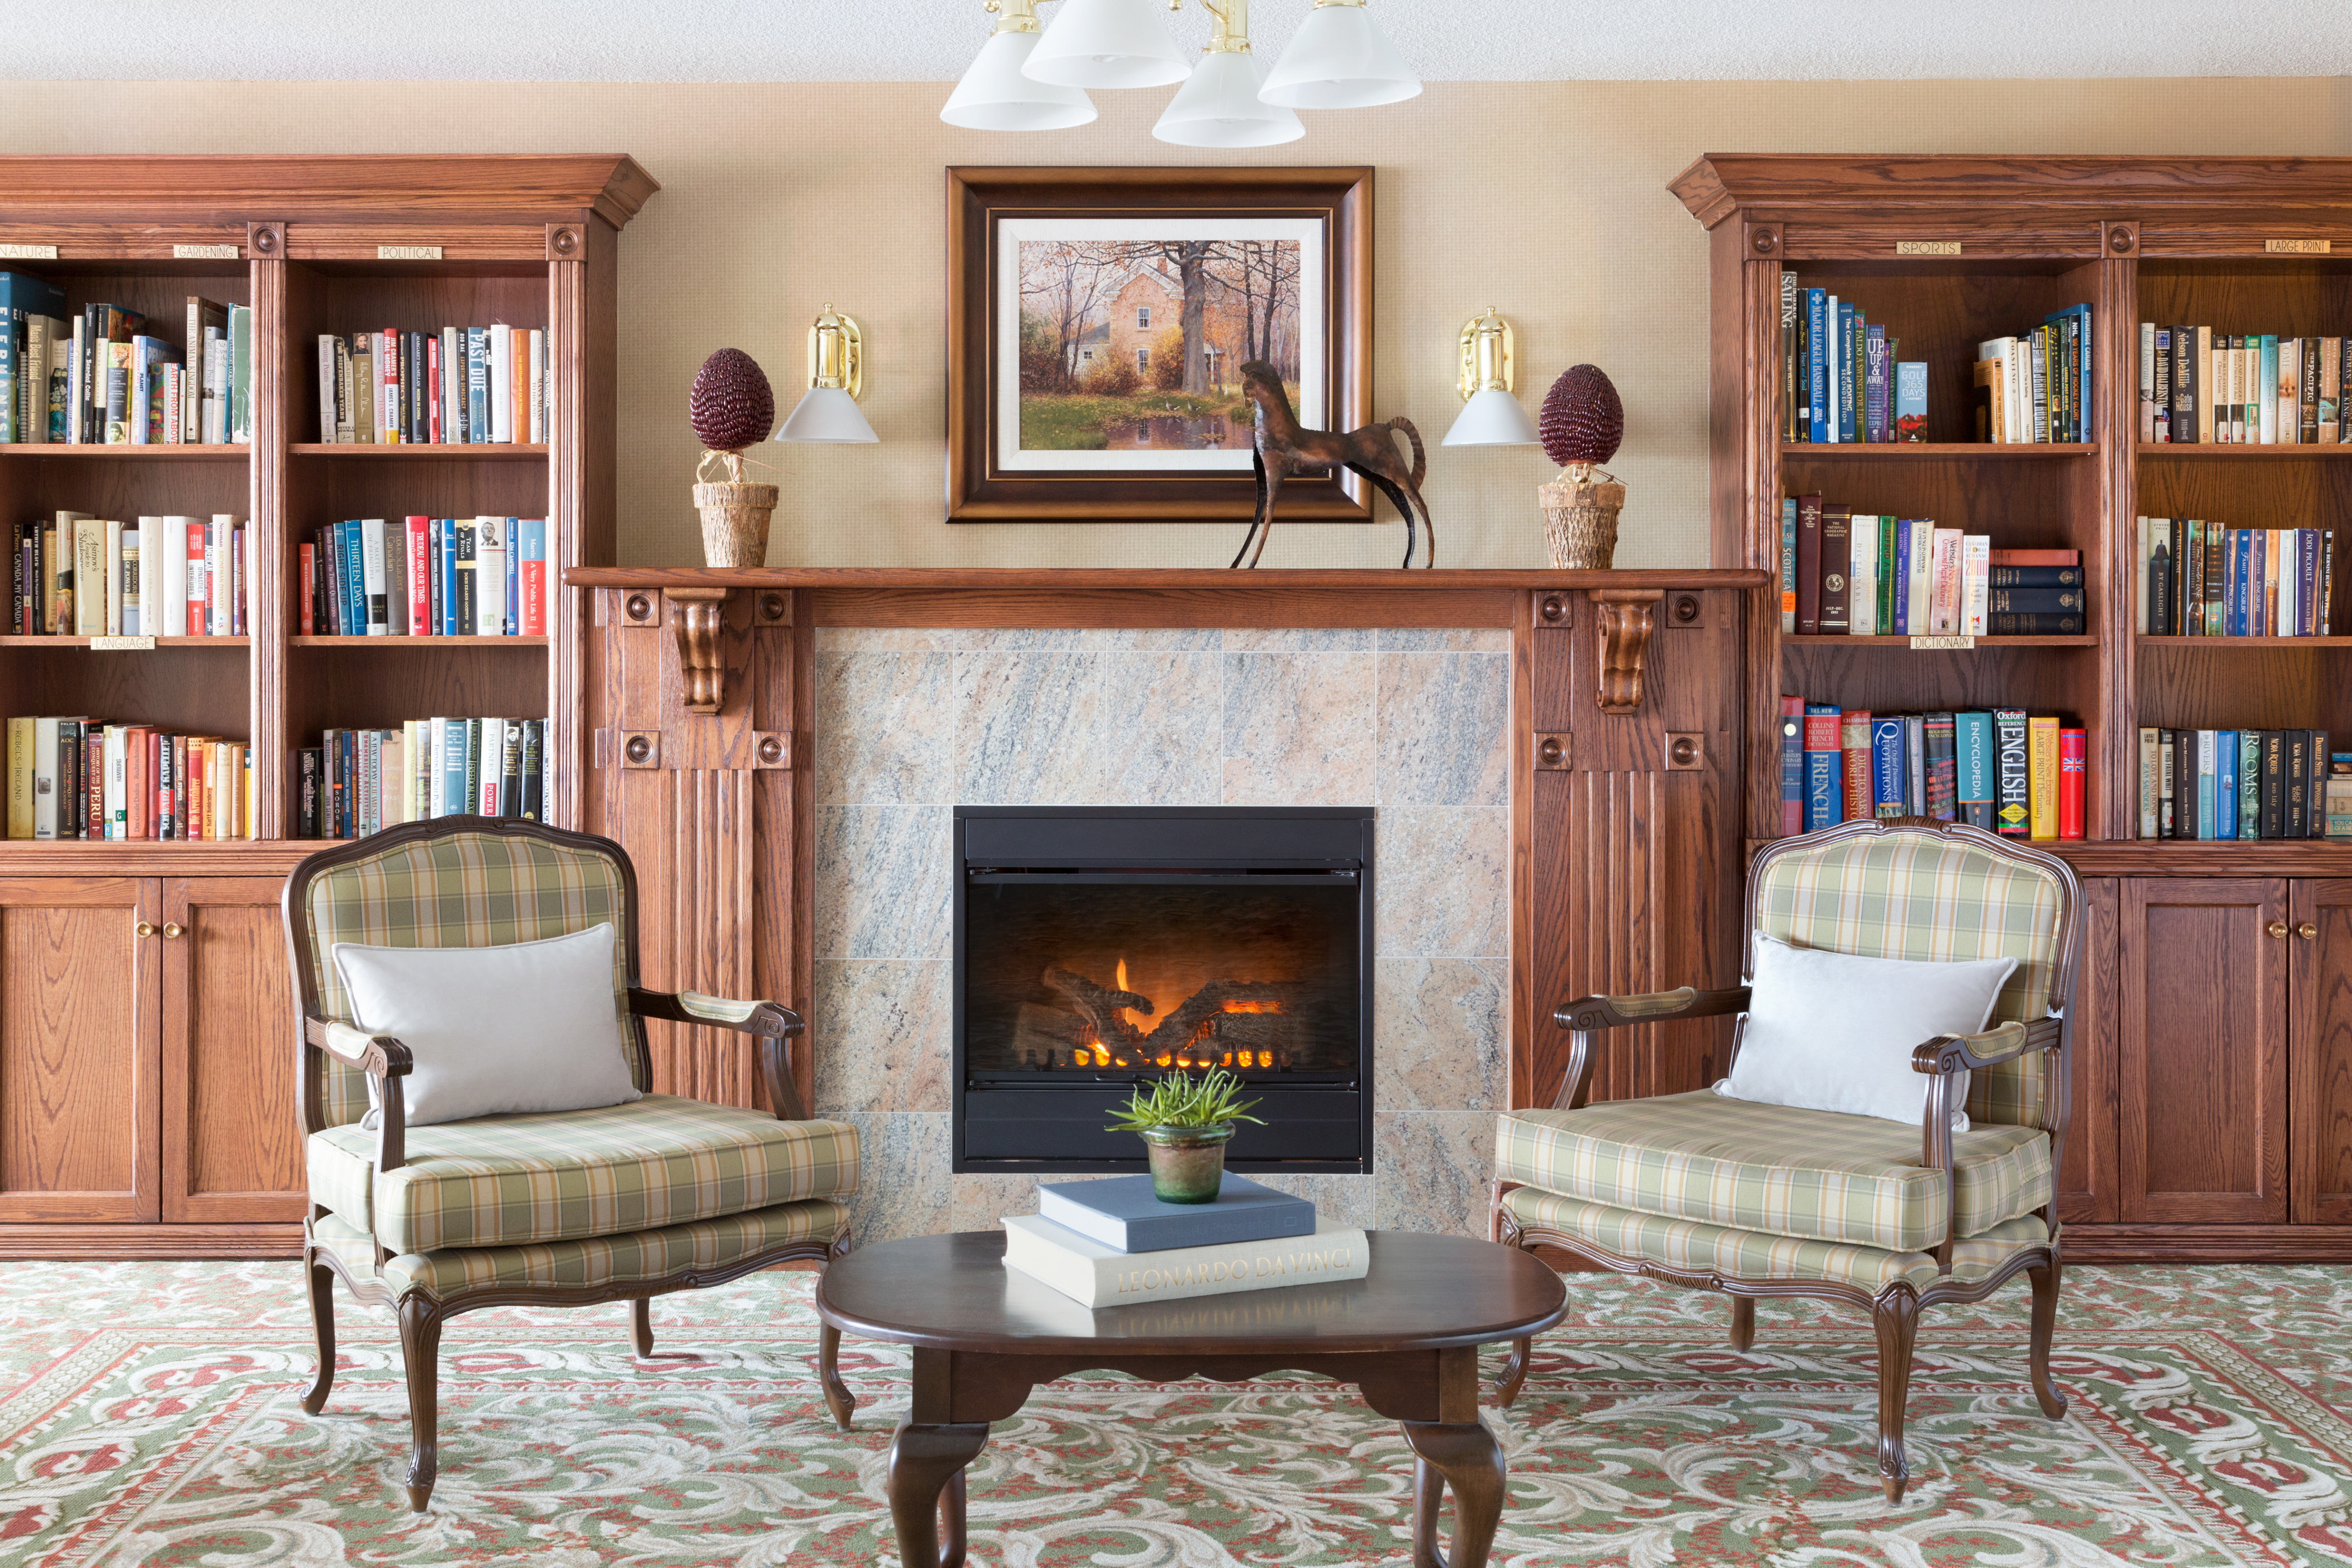 Library room with fireplace at Amica City Center senior living residence.